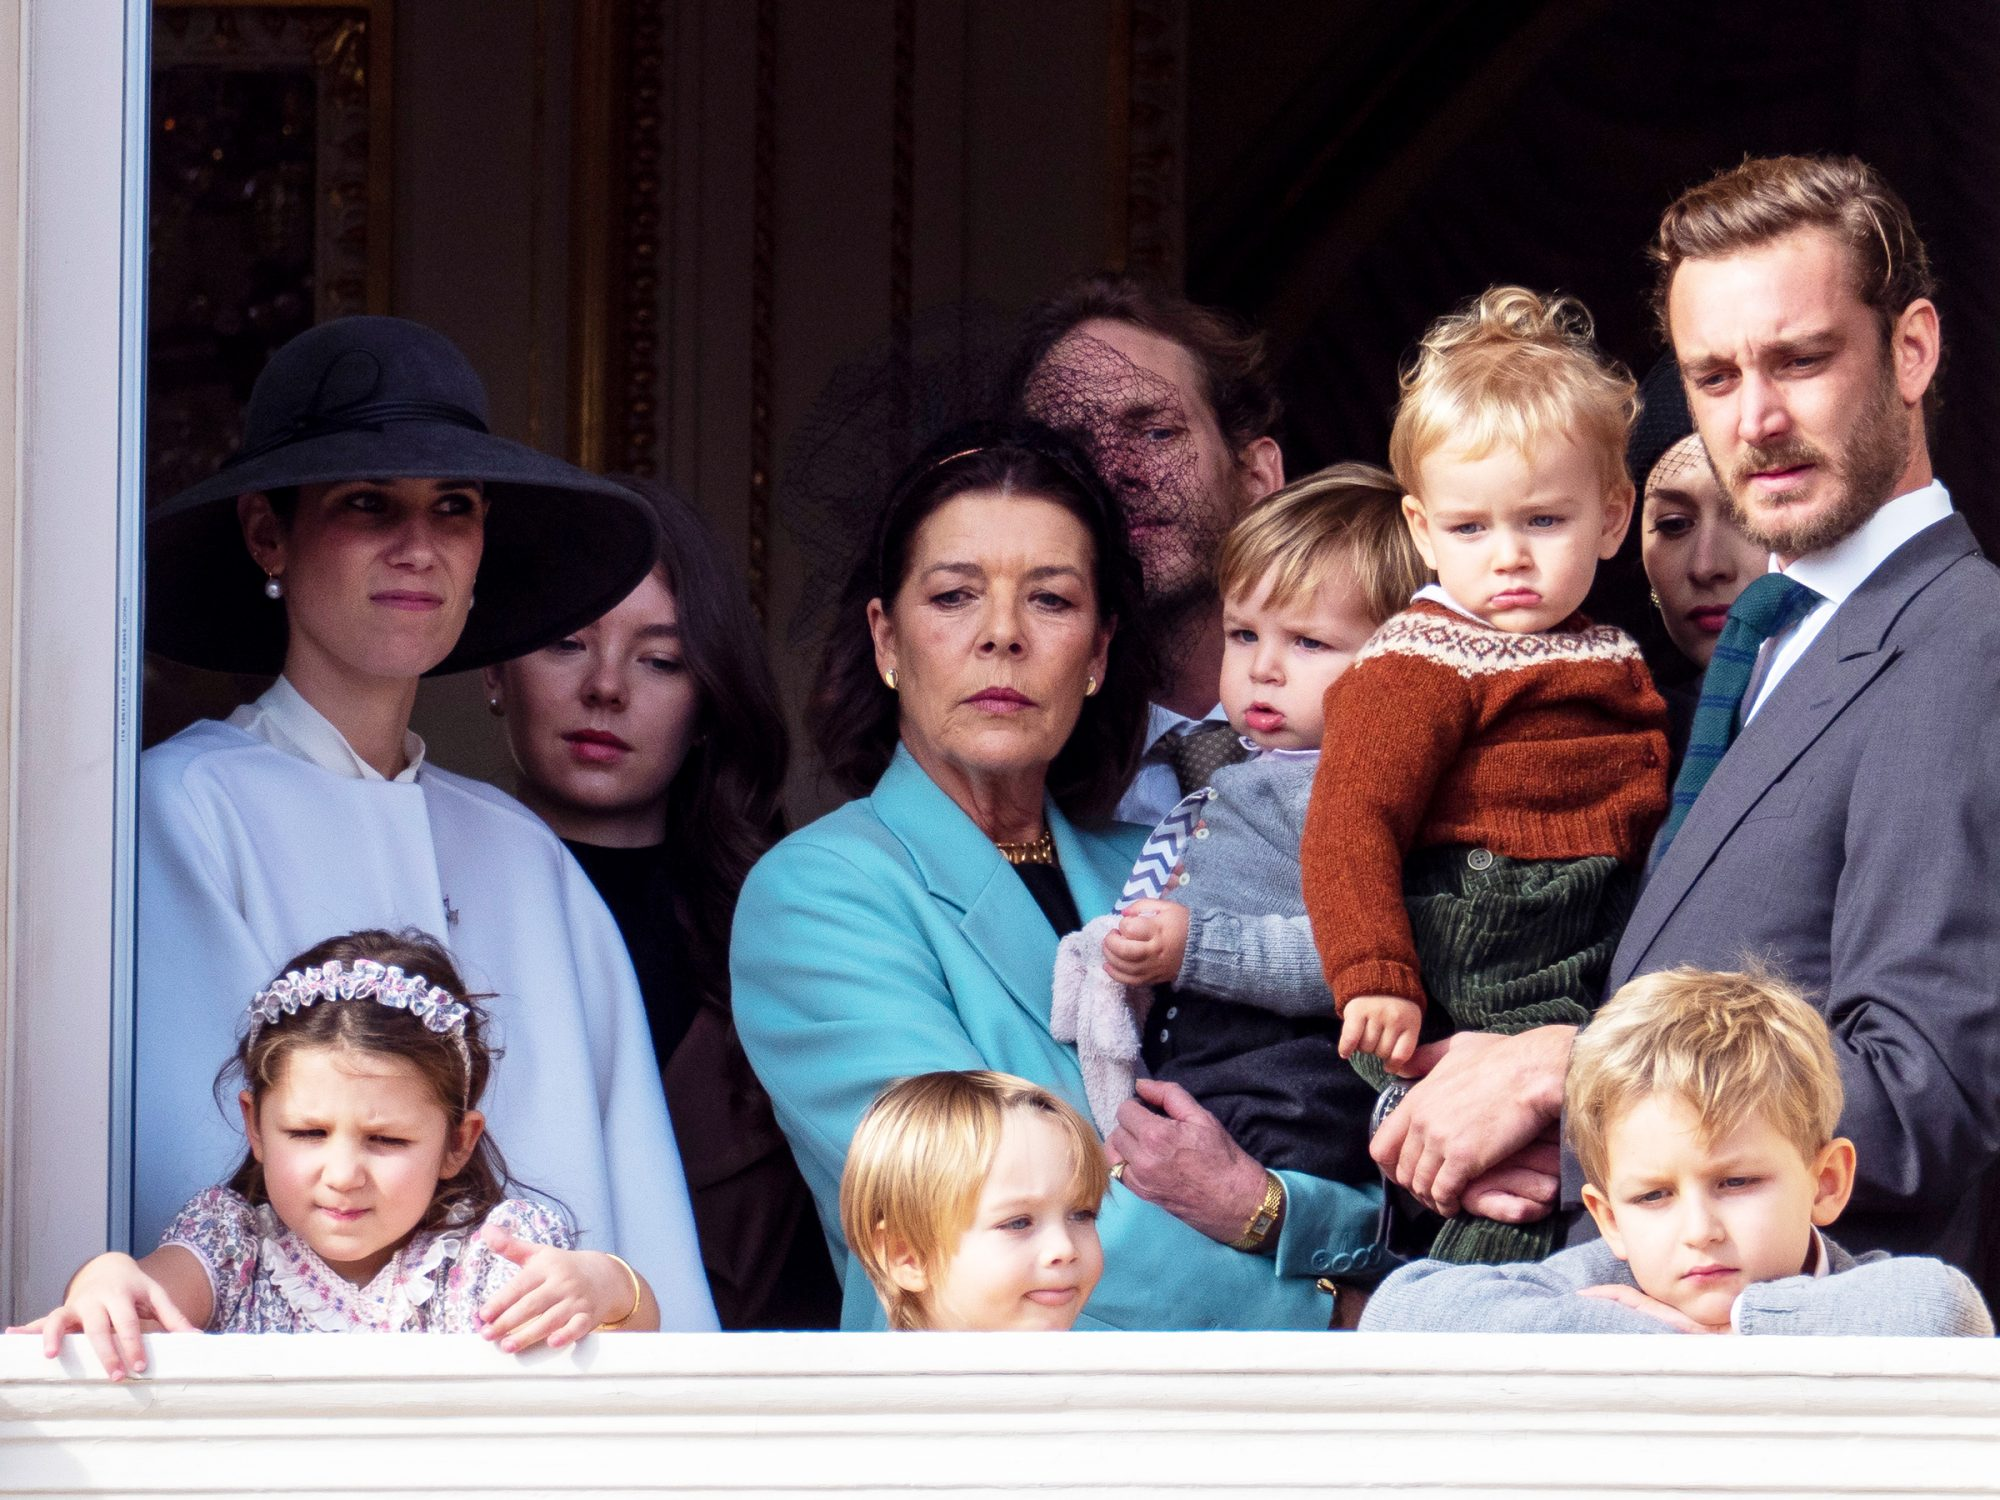 Princess Caroline of Hanover, Pierre Casiraghi with Francesco Casiraghi, India Casiraghi, Stefano Casiraghi and Alexandre Casiraghi stand at the Palace balcony on November 19, 2019 in Monte-Carlo, Monaco